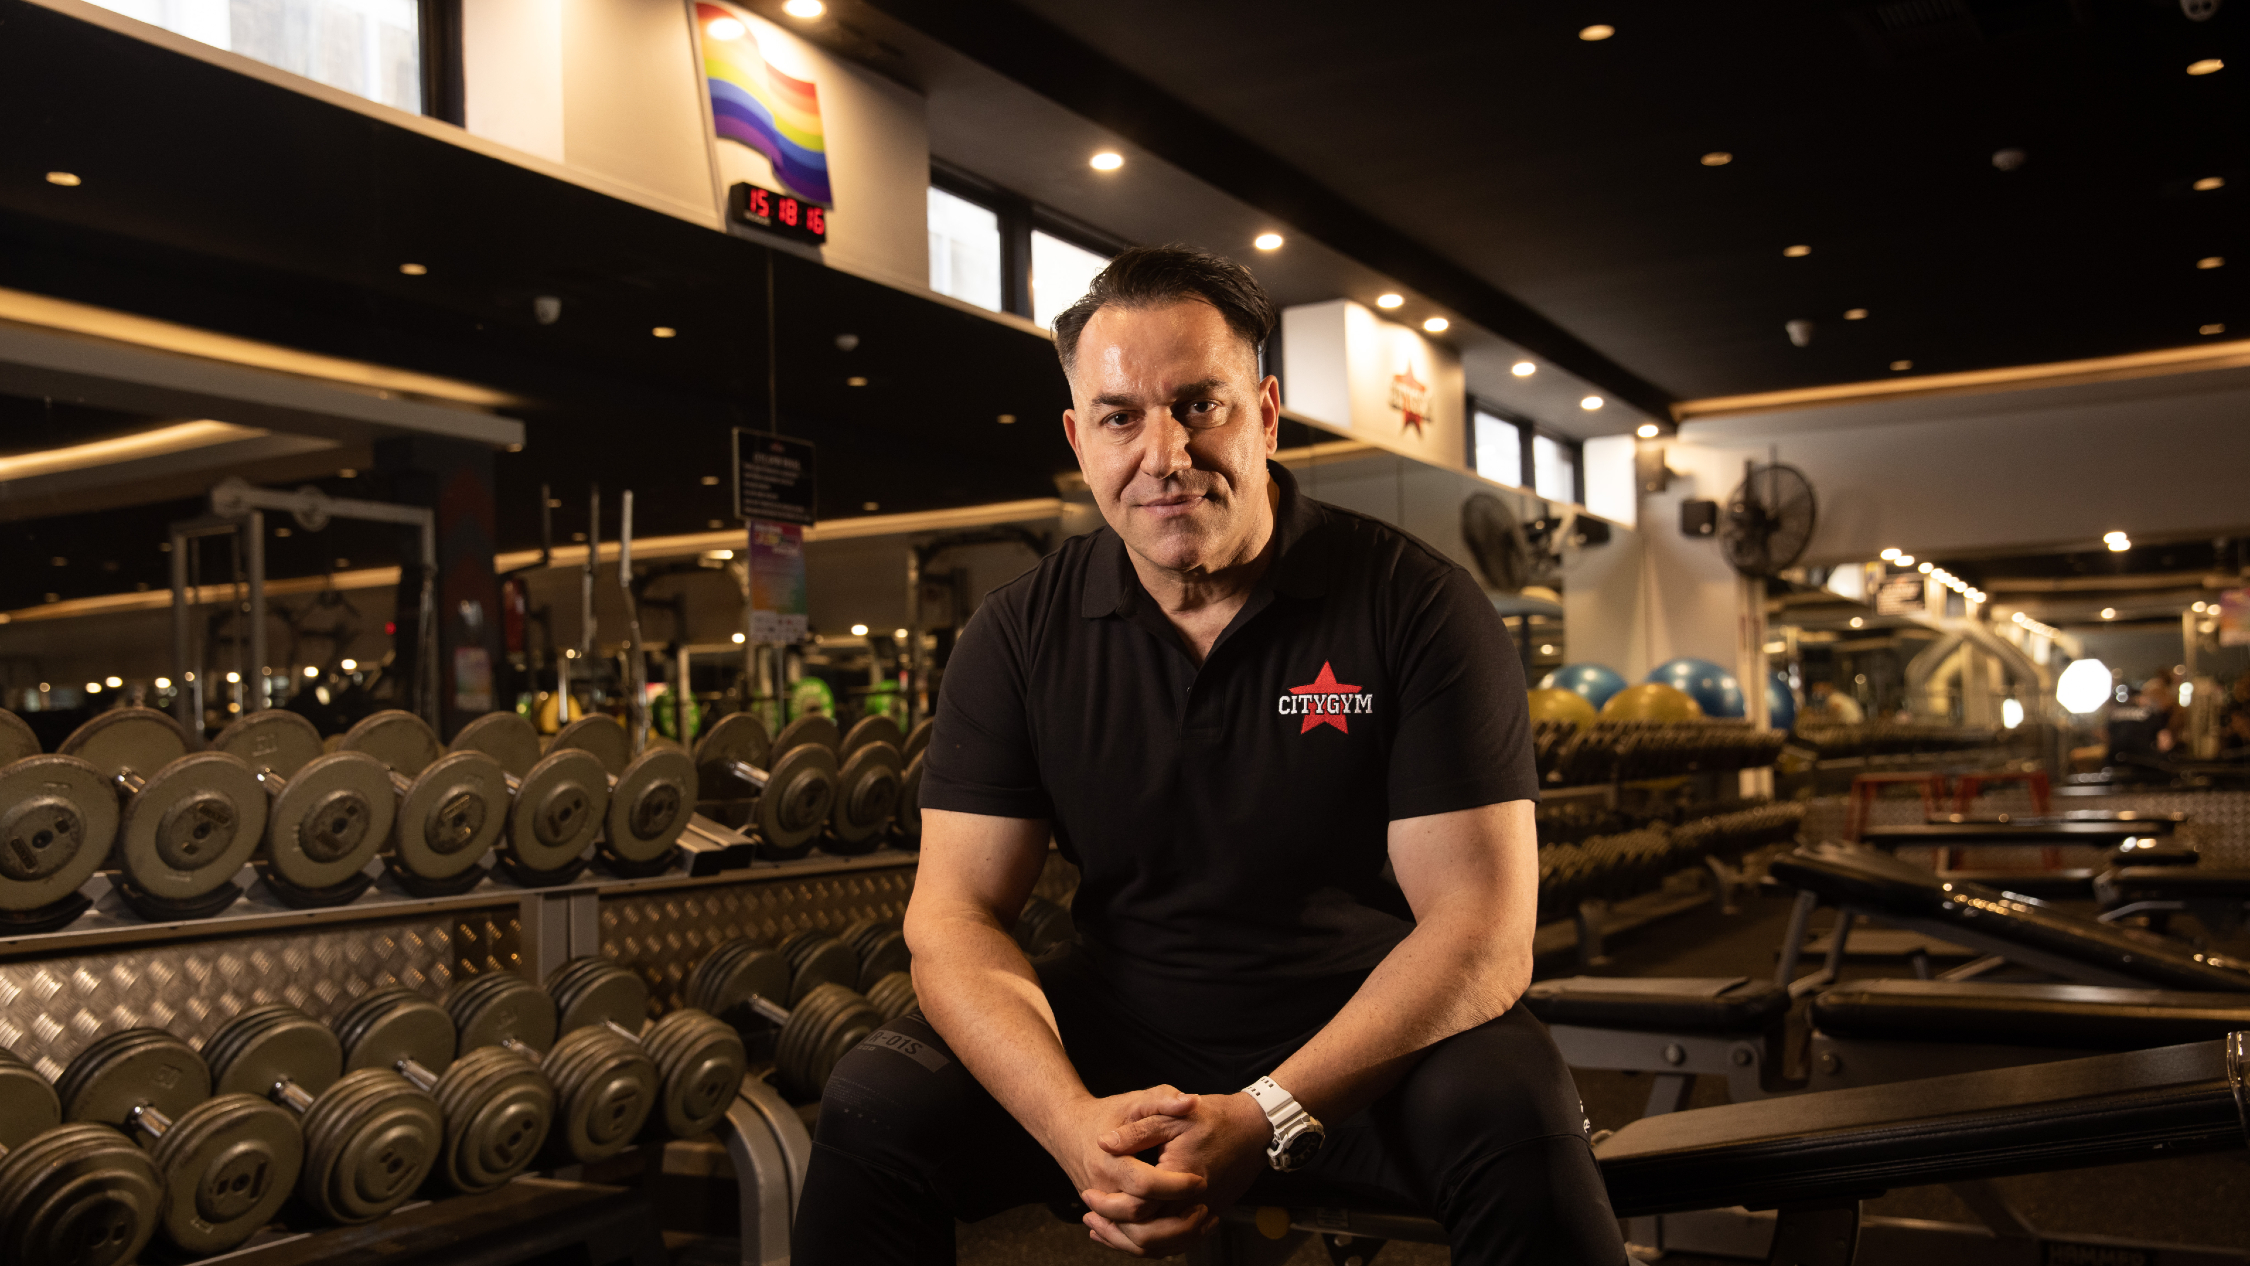 Billy Kokkinis at City Gym